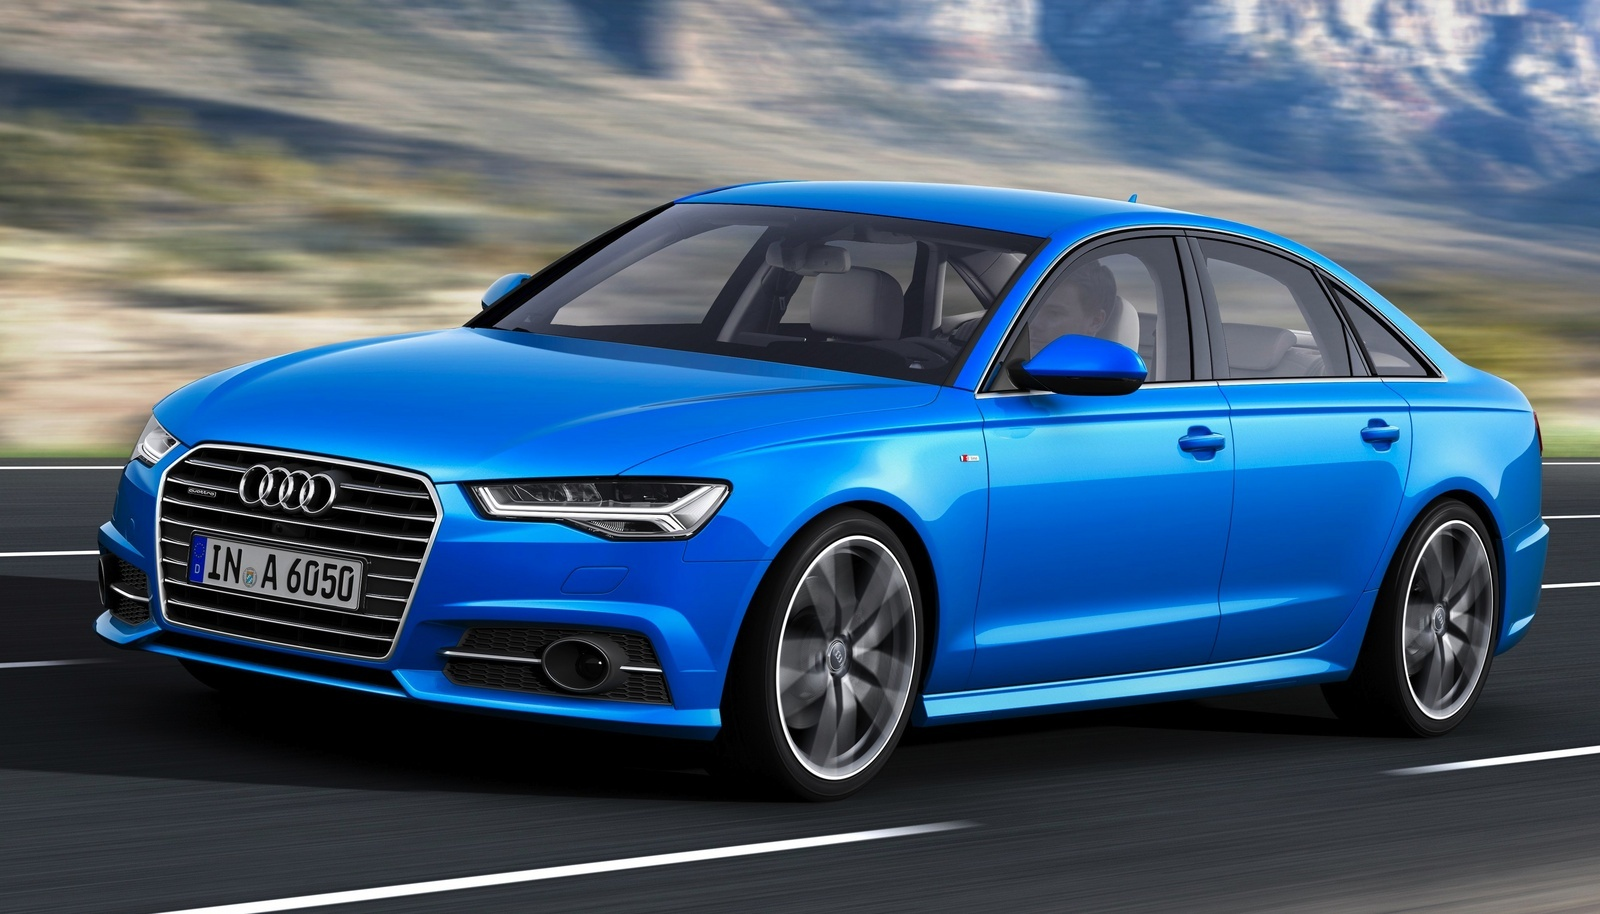 2016 audi a6 - overview - cargurus